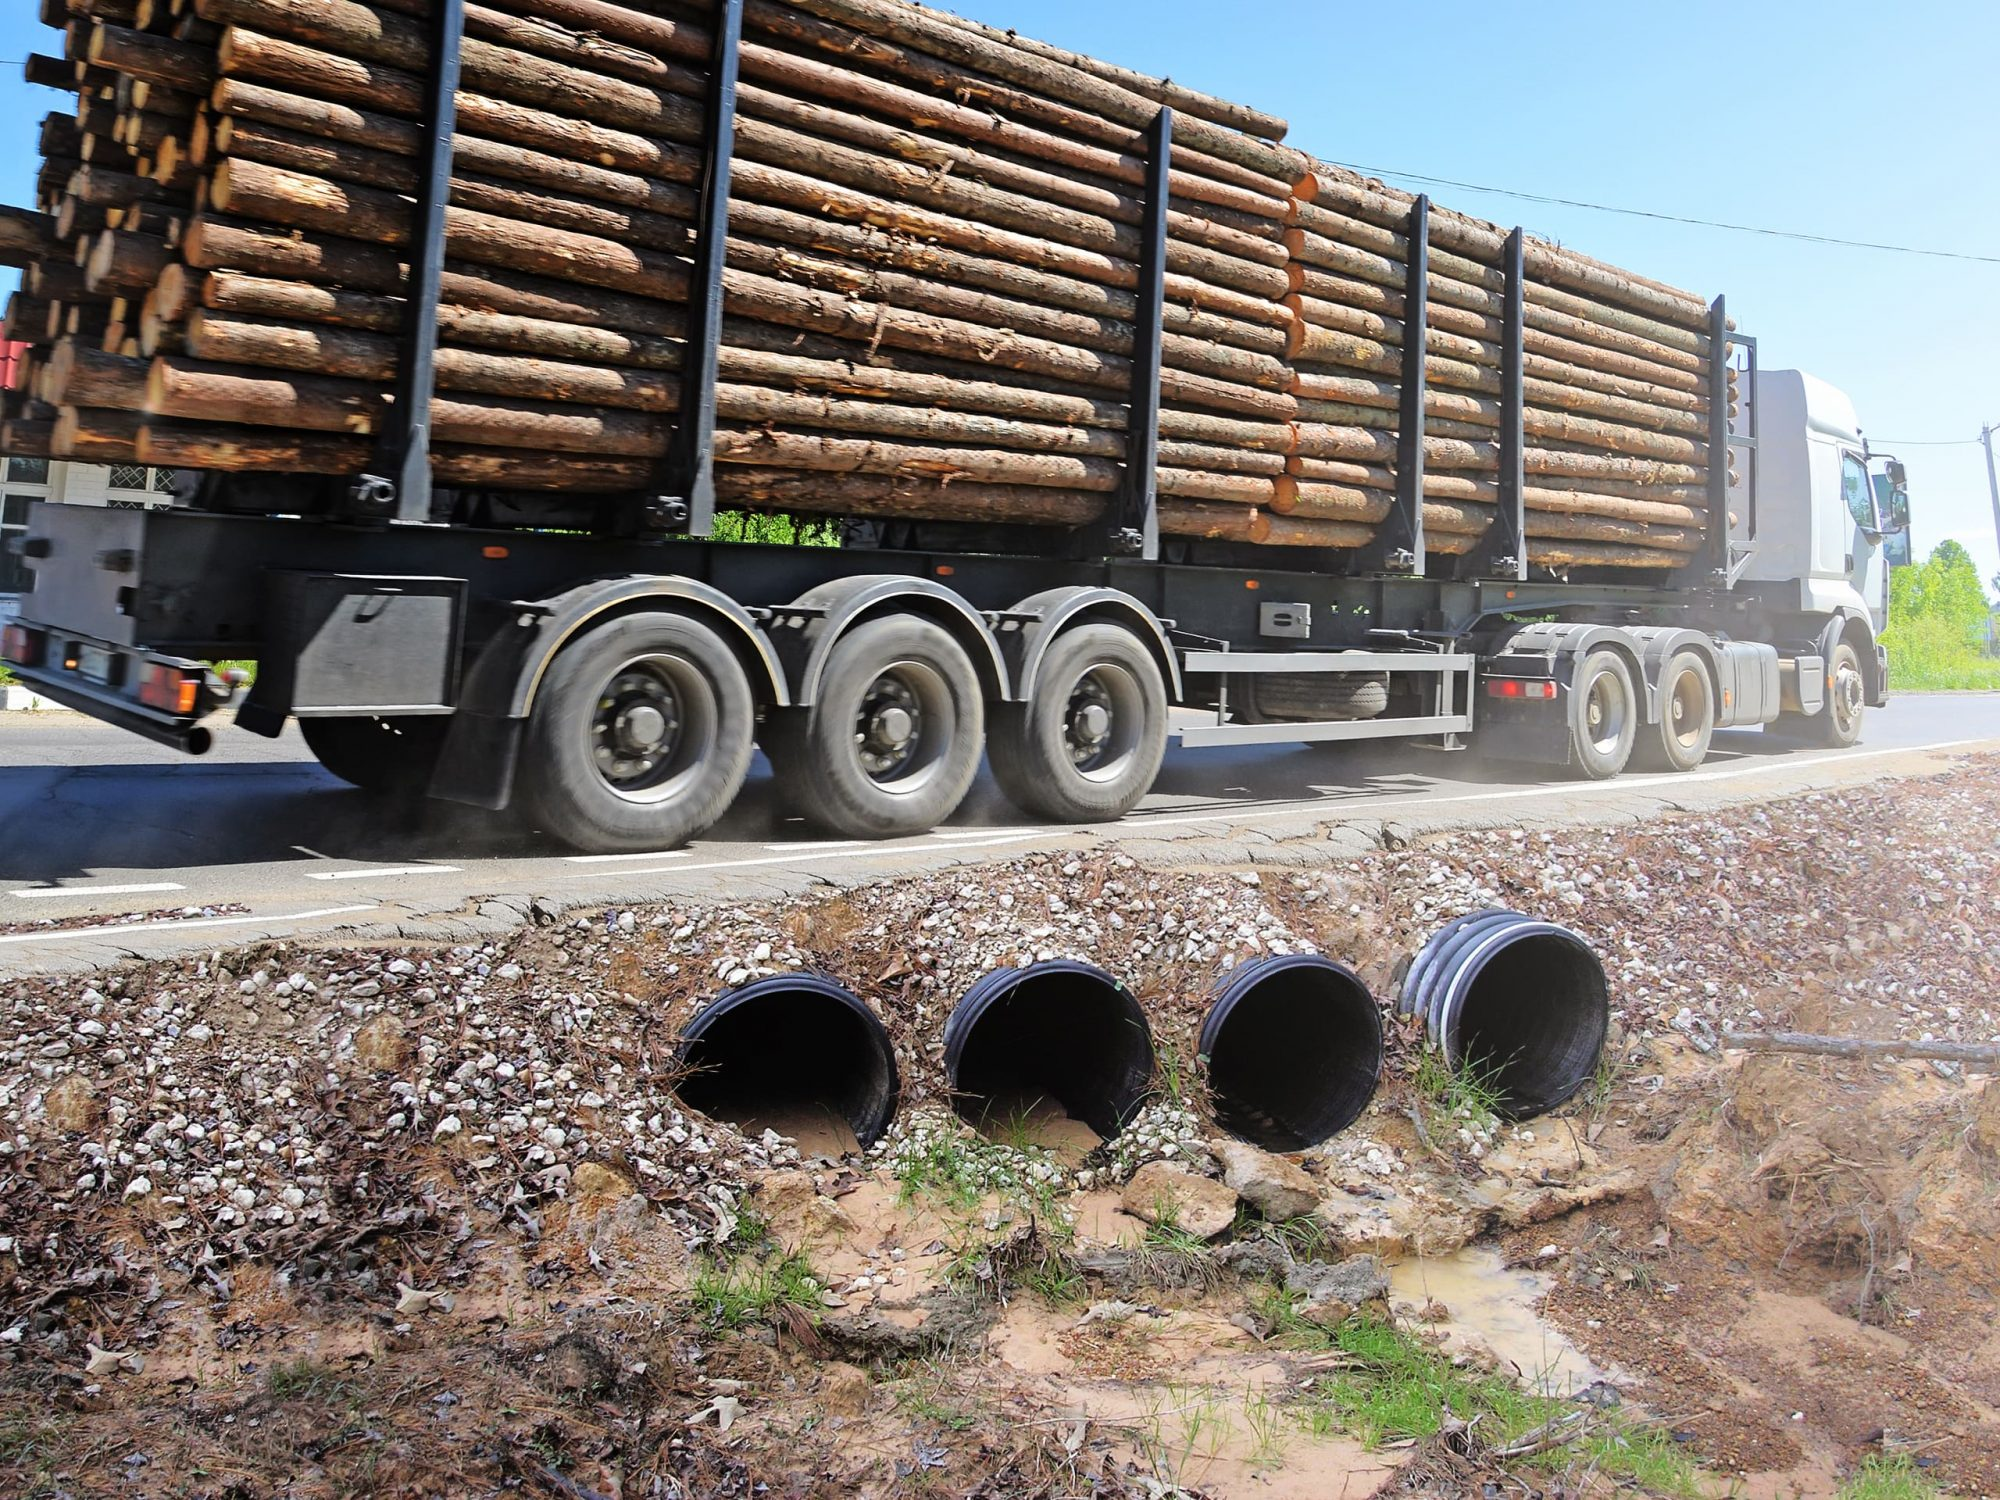 Culvert pipe, a robust draining piping system